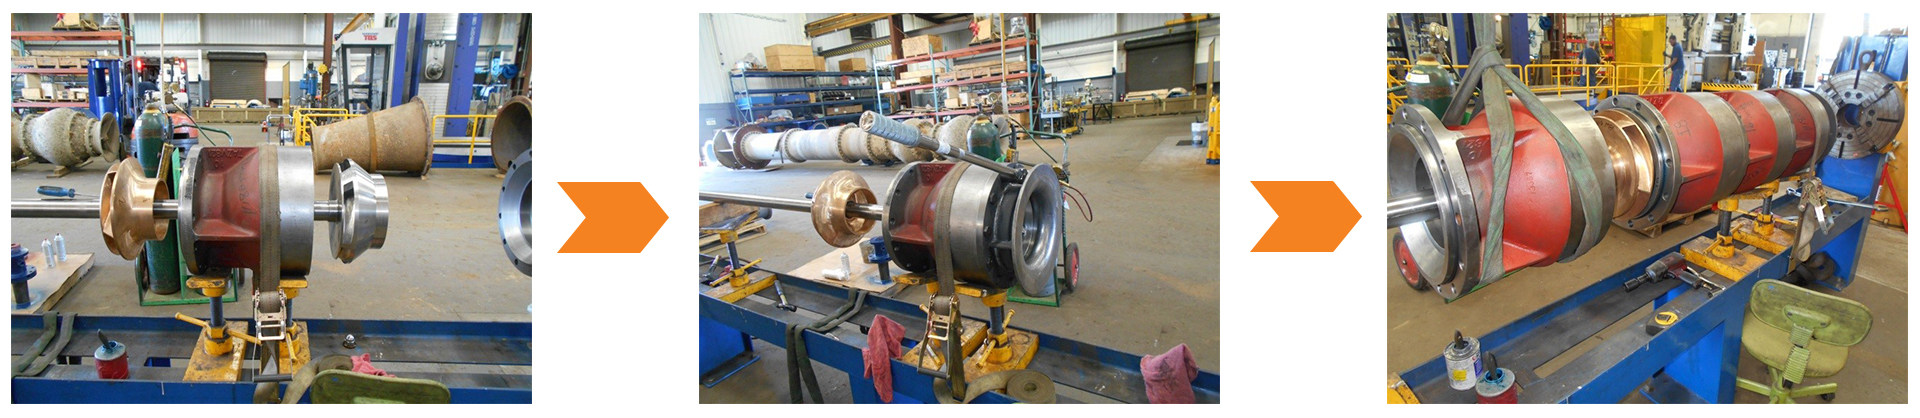 Re-bowl service for Vertical Turbine Pumps